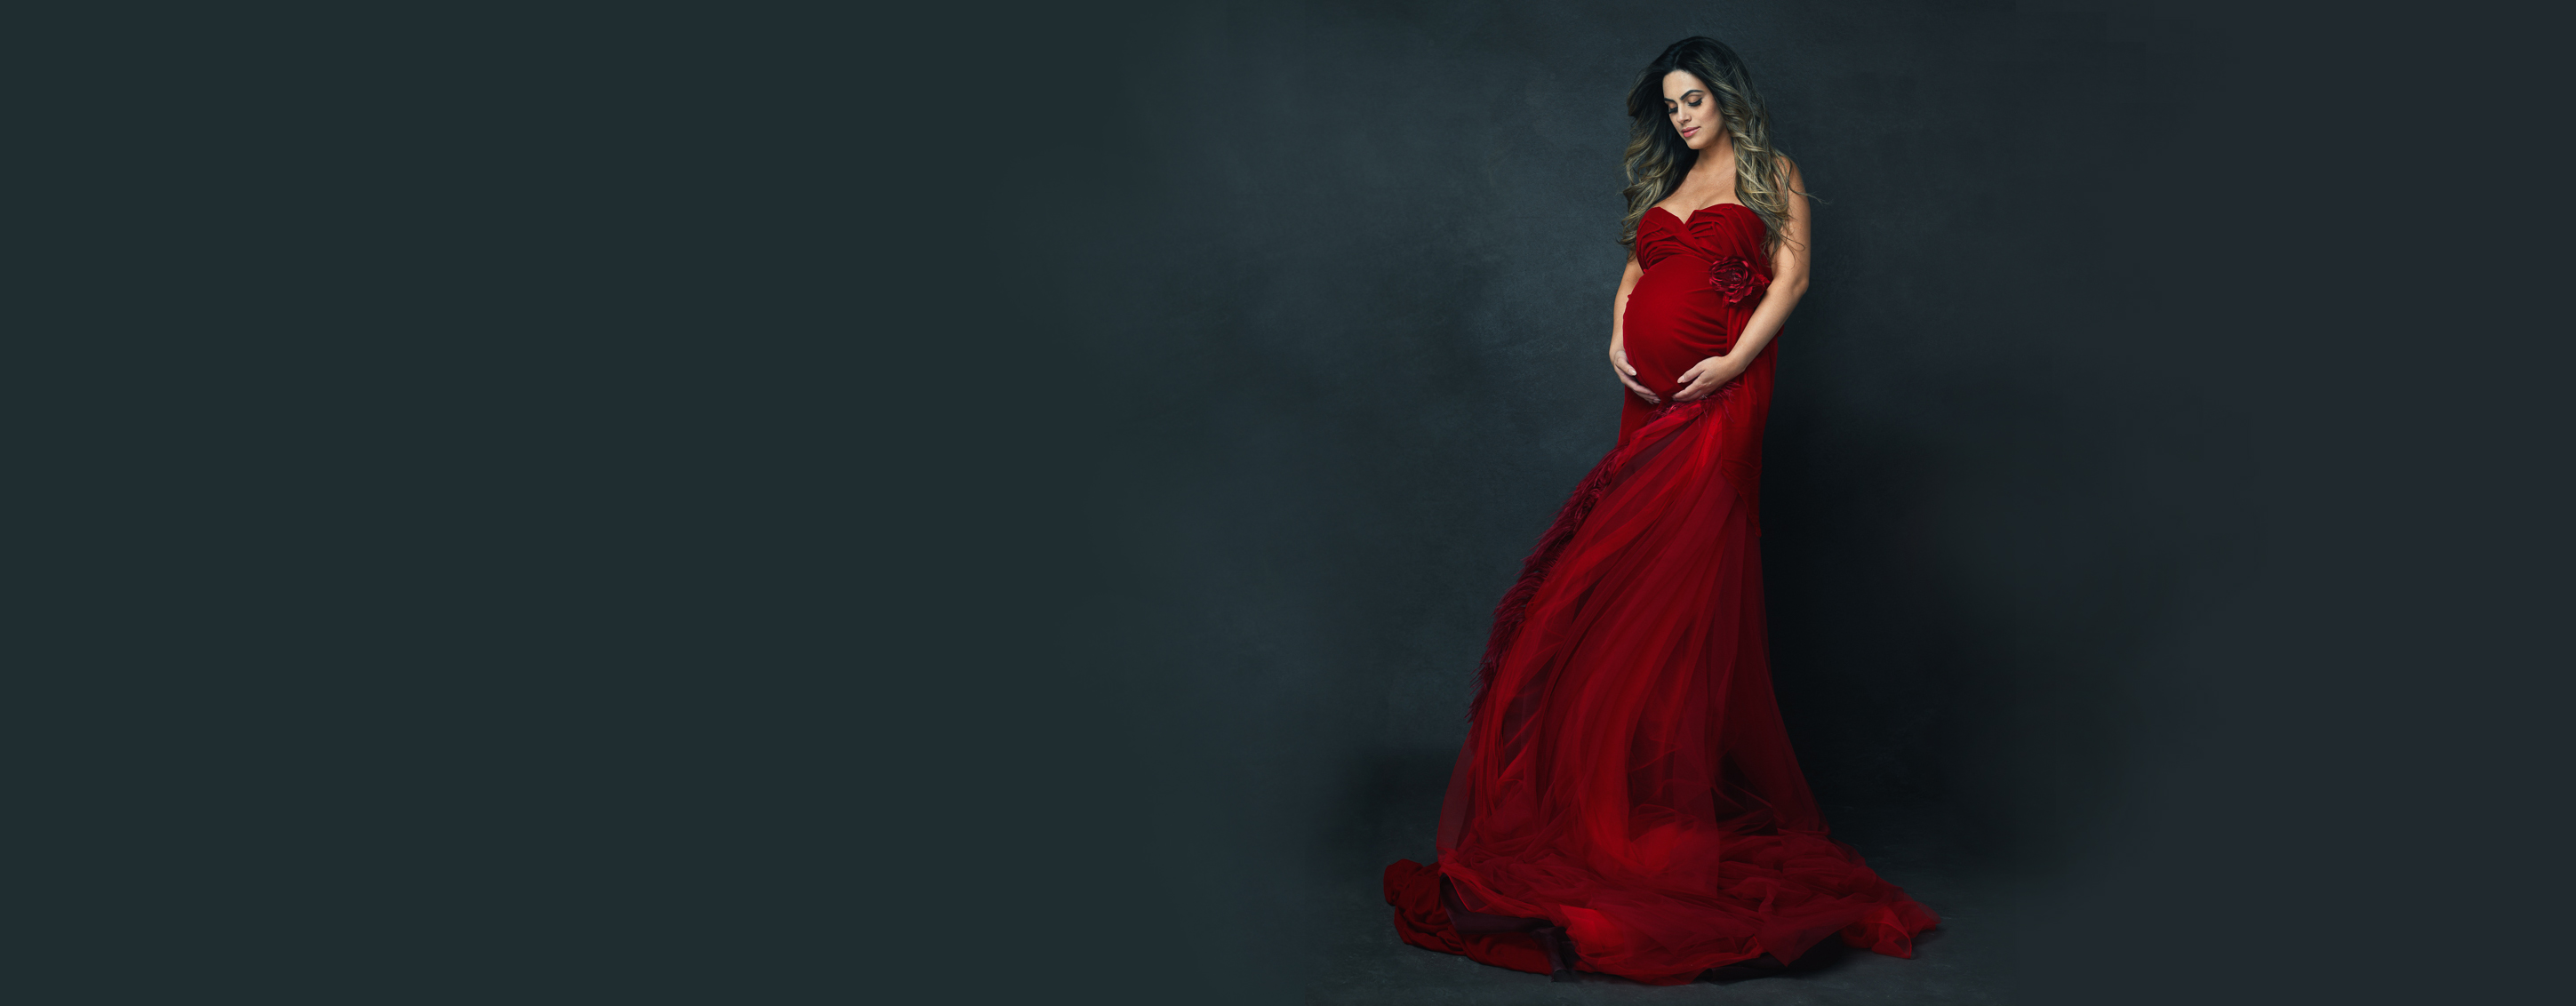 a dramatic portrait of a pregnant woman wearing a red flowing gown